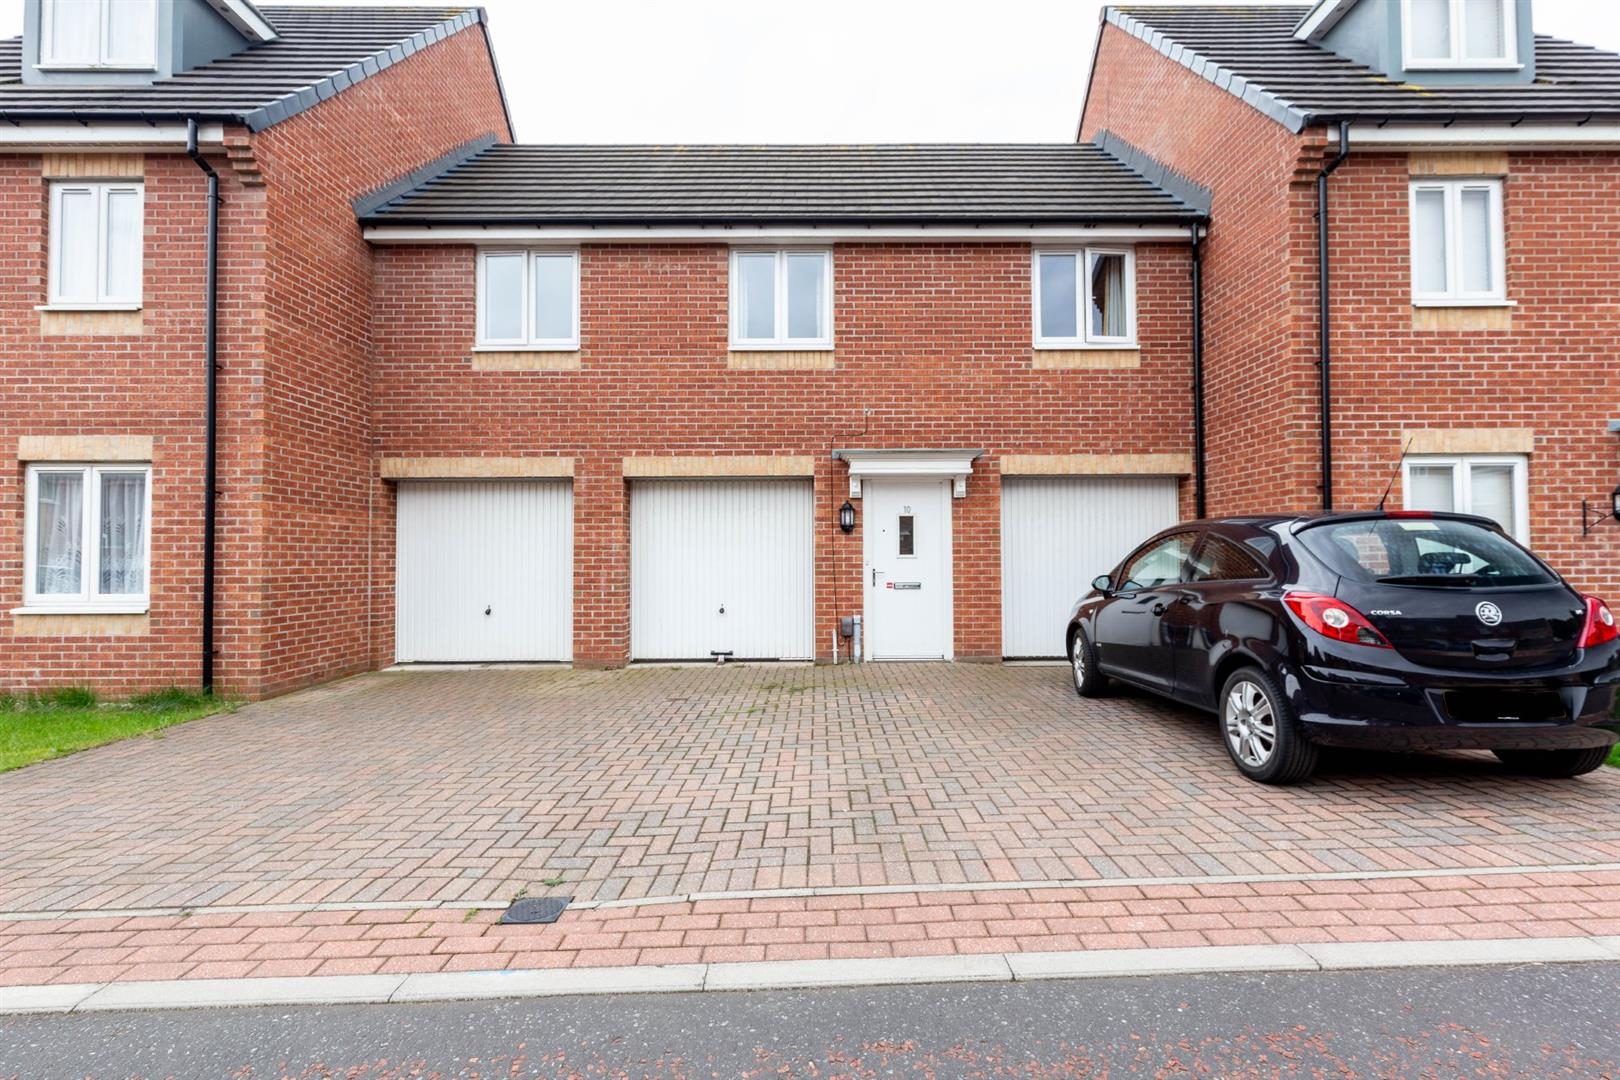 2 bed apartment for sale in Newcastle Upon Tyne, NE5 2GF  - Property Image 1